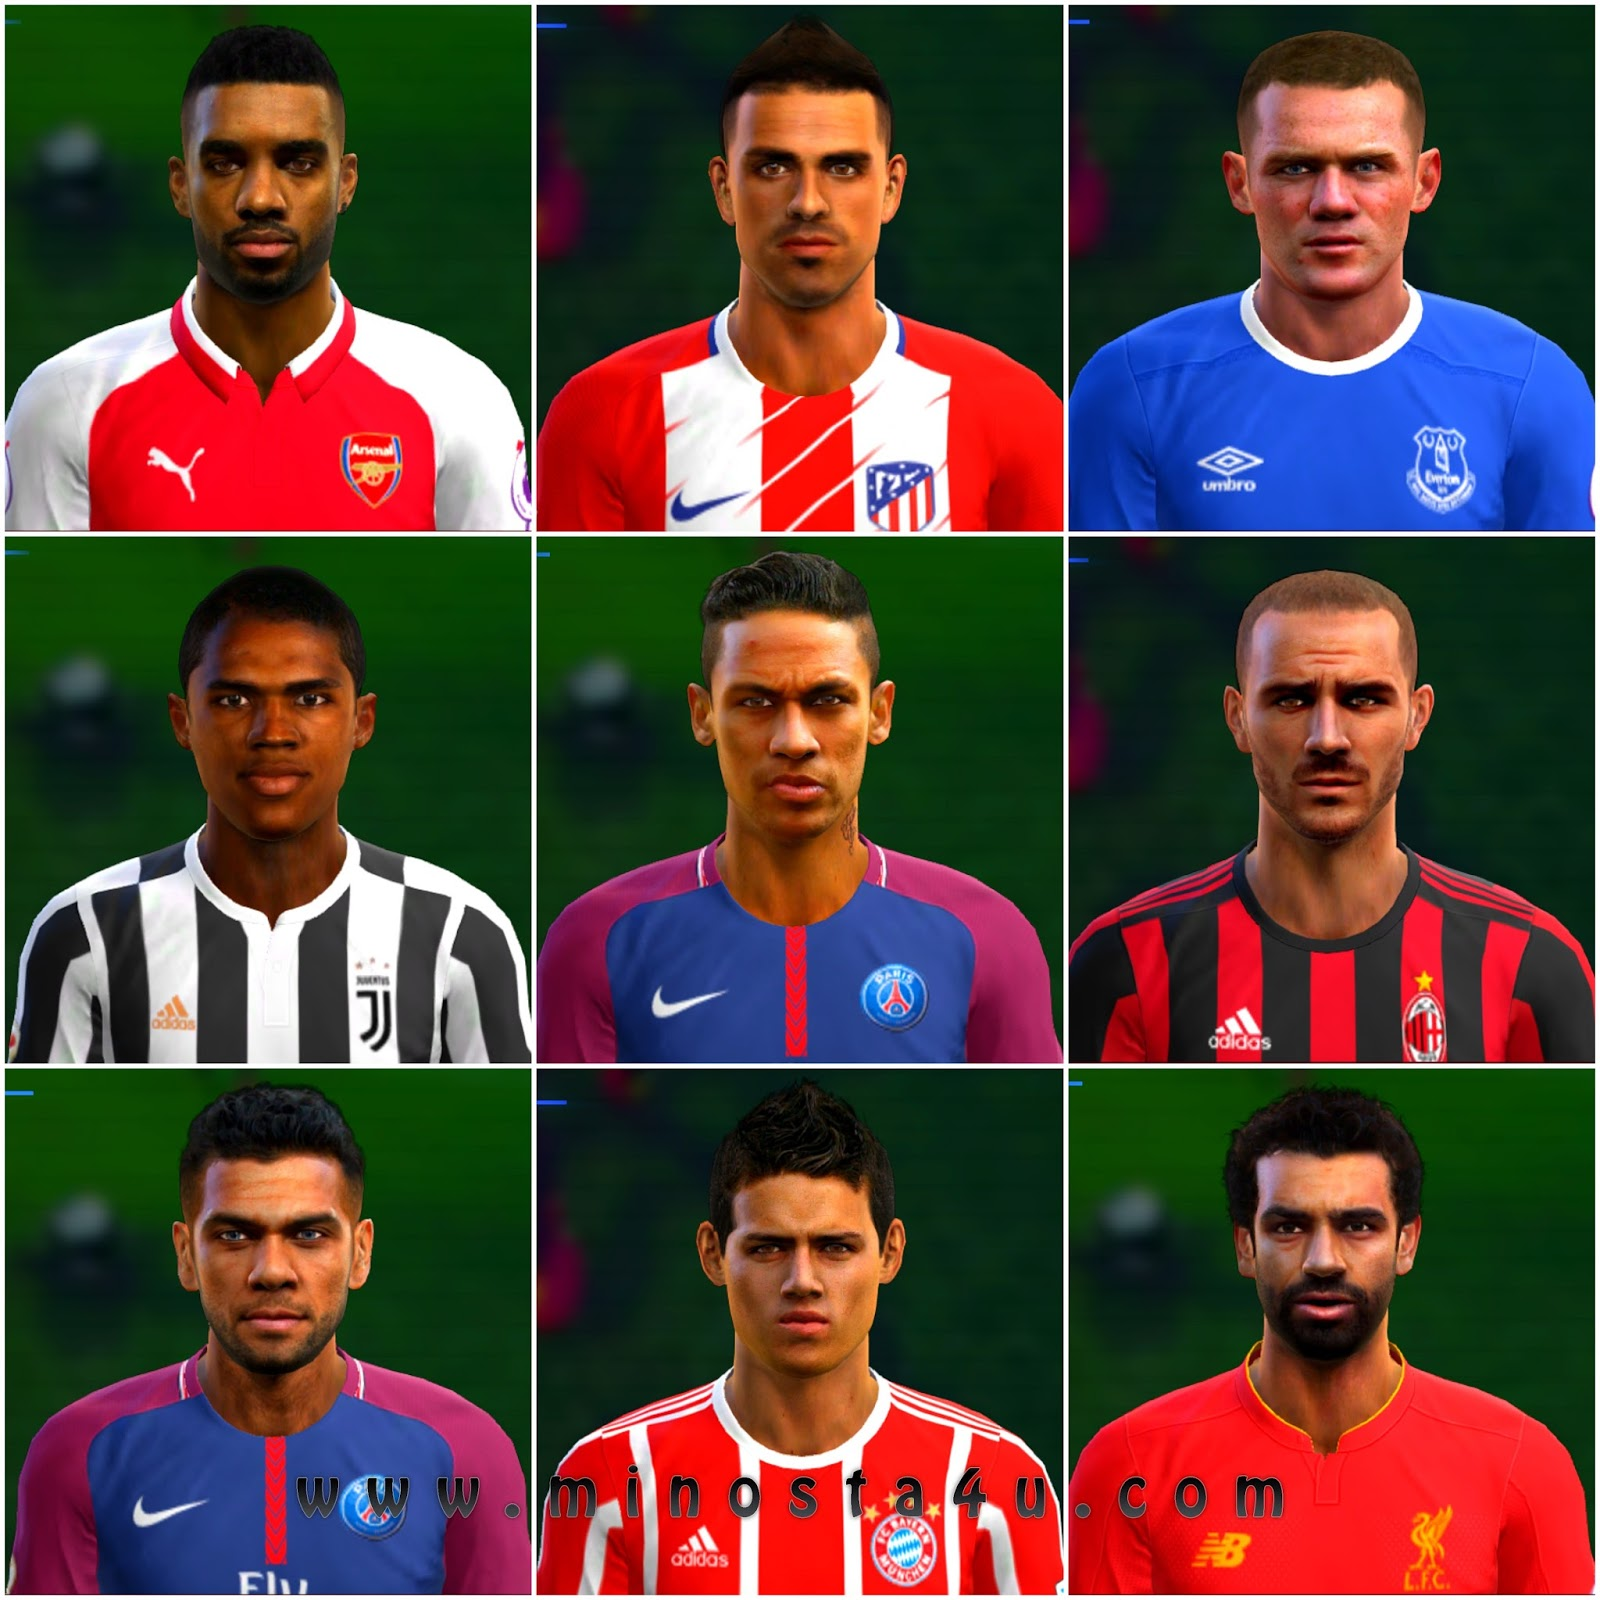 pes 2013 option file update transfers 2017/2018